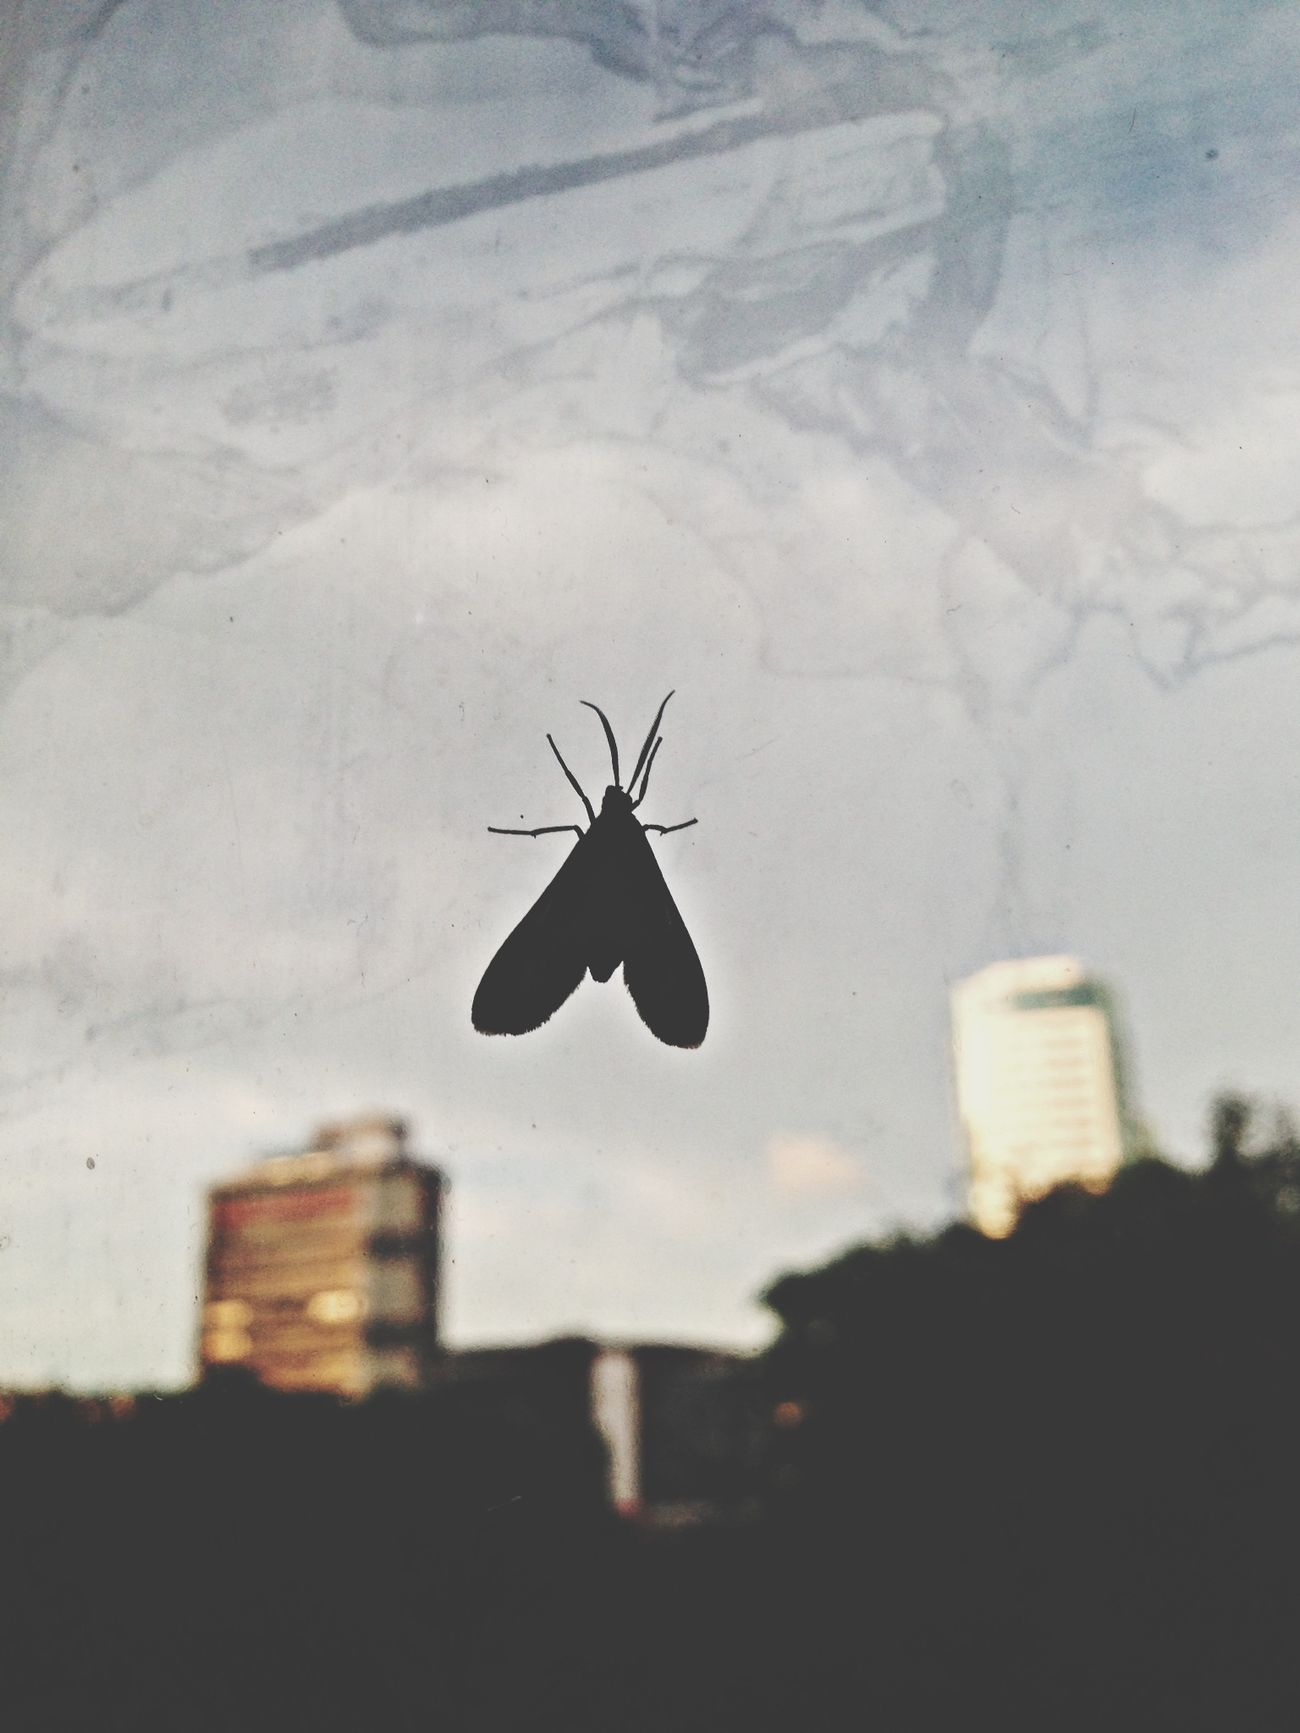 Something like a Bug at the Window . That kinda was the view Frommywindow yesterday haha